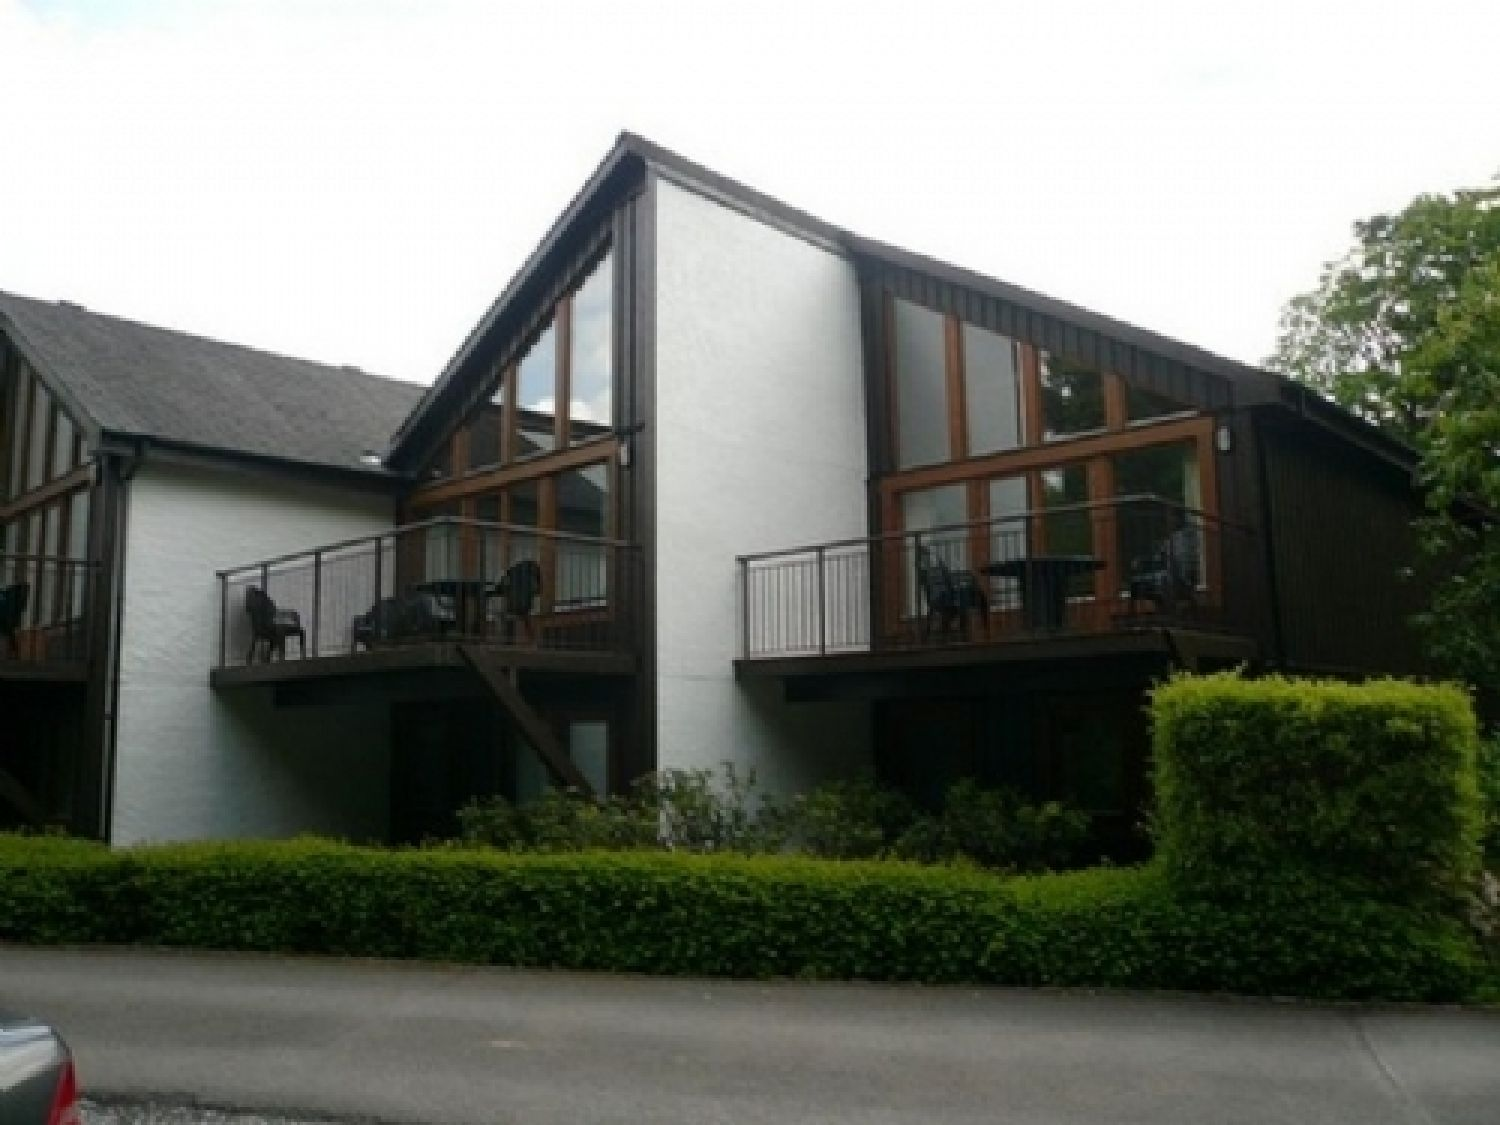 22 Keswick Bridge in Keswick - sleeps 4 people